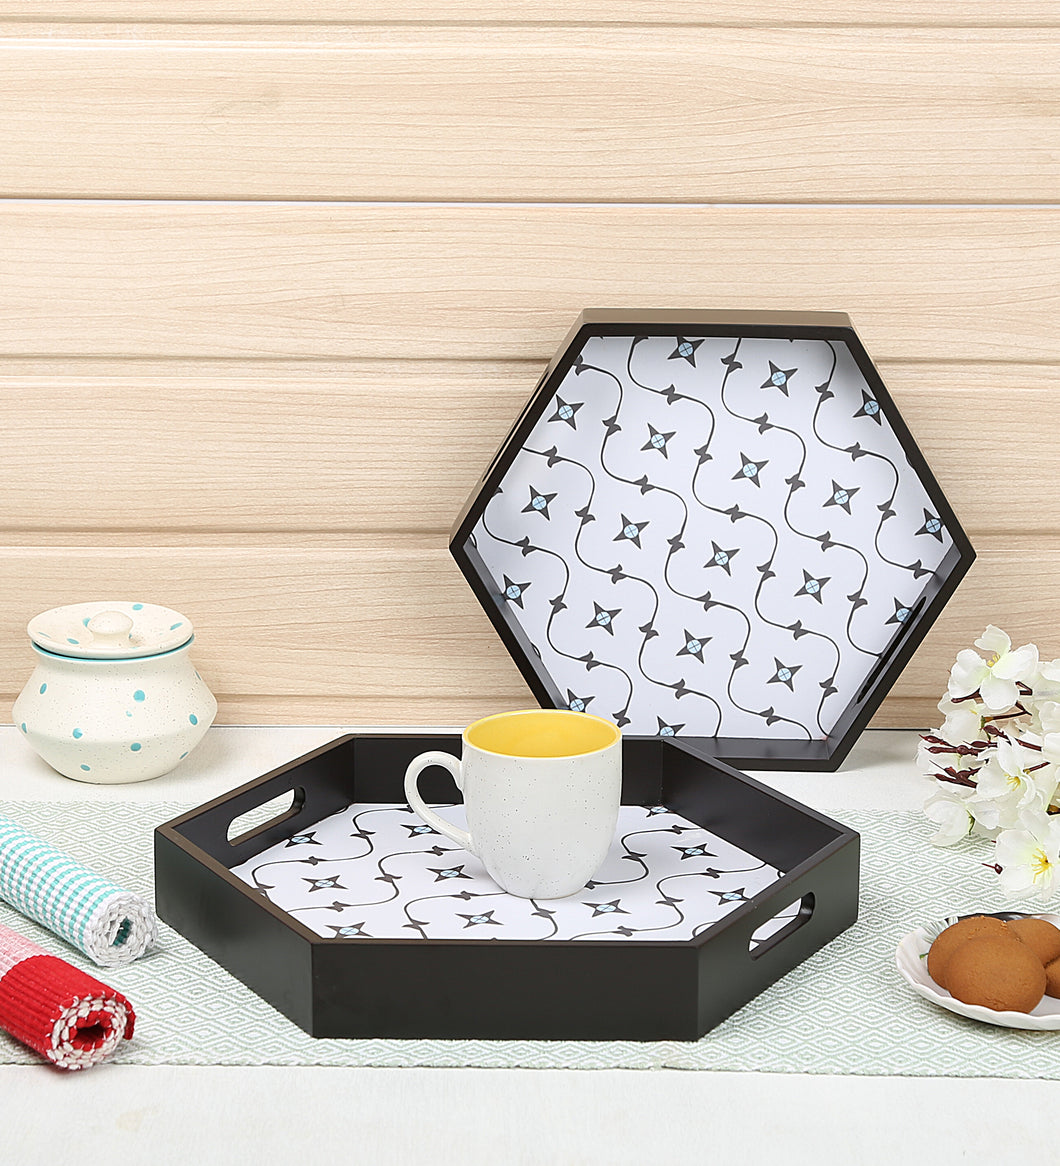 Crayton Star MDF Hexagon Serving Tray Set of 2